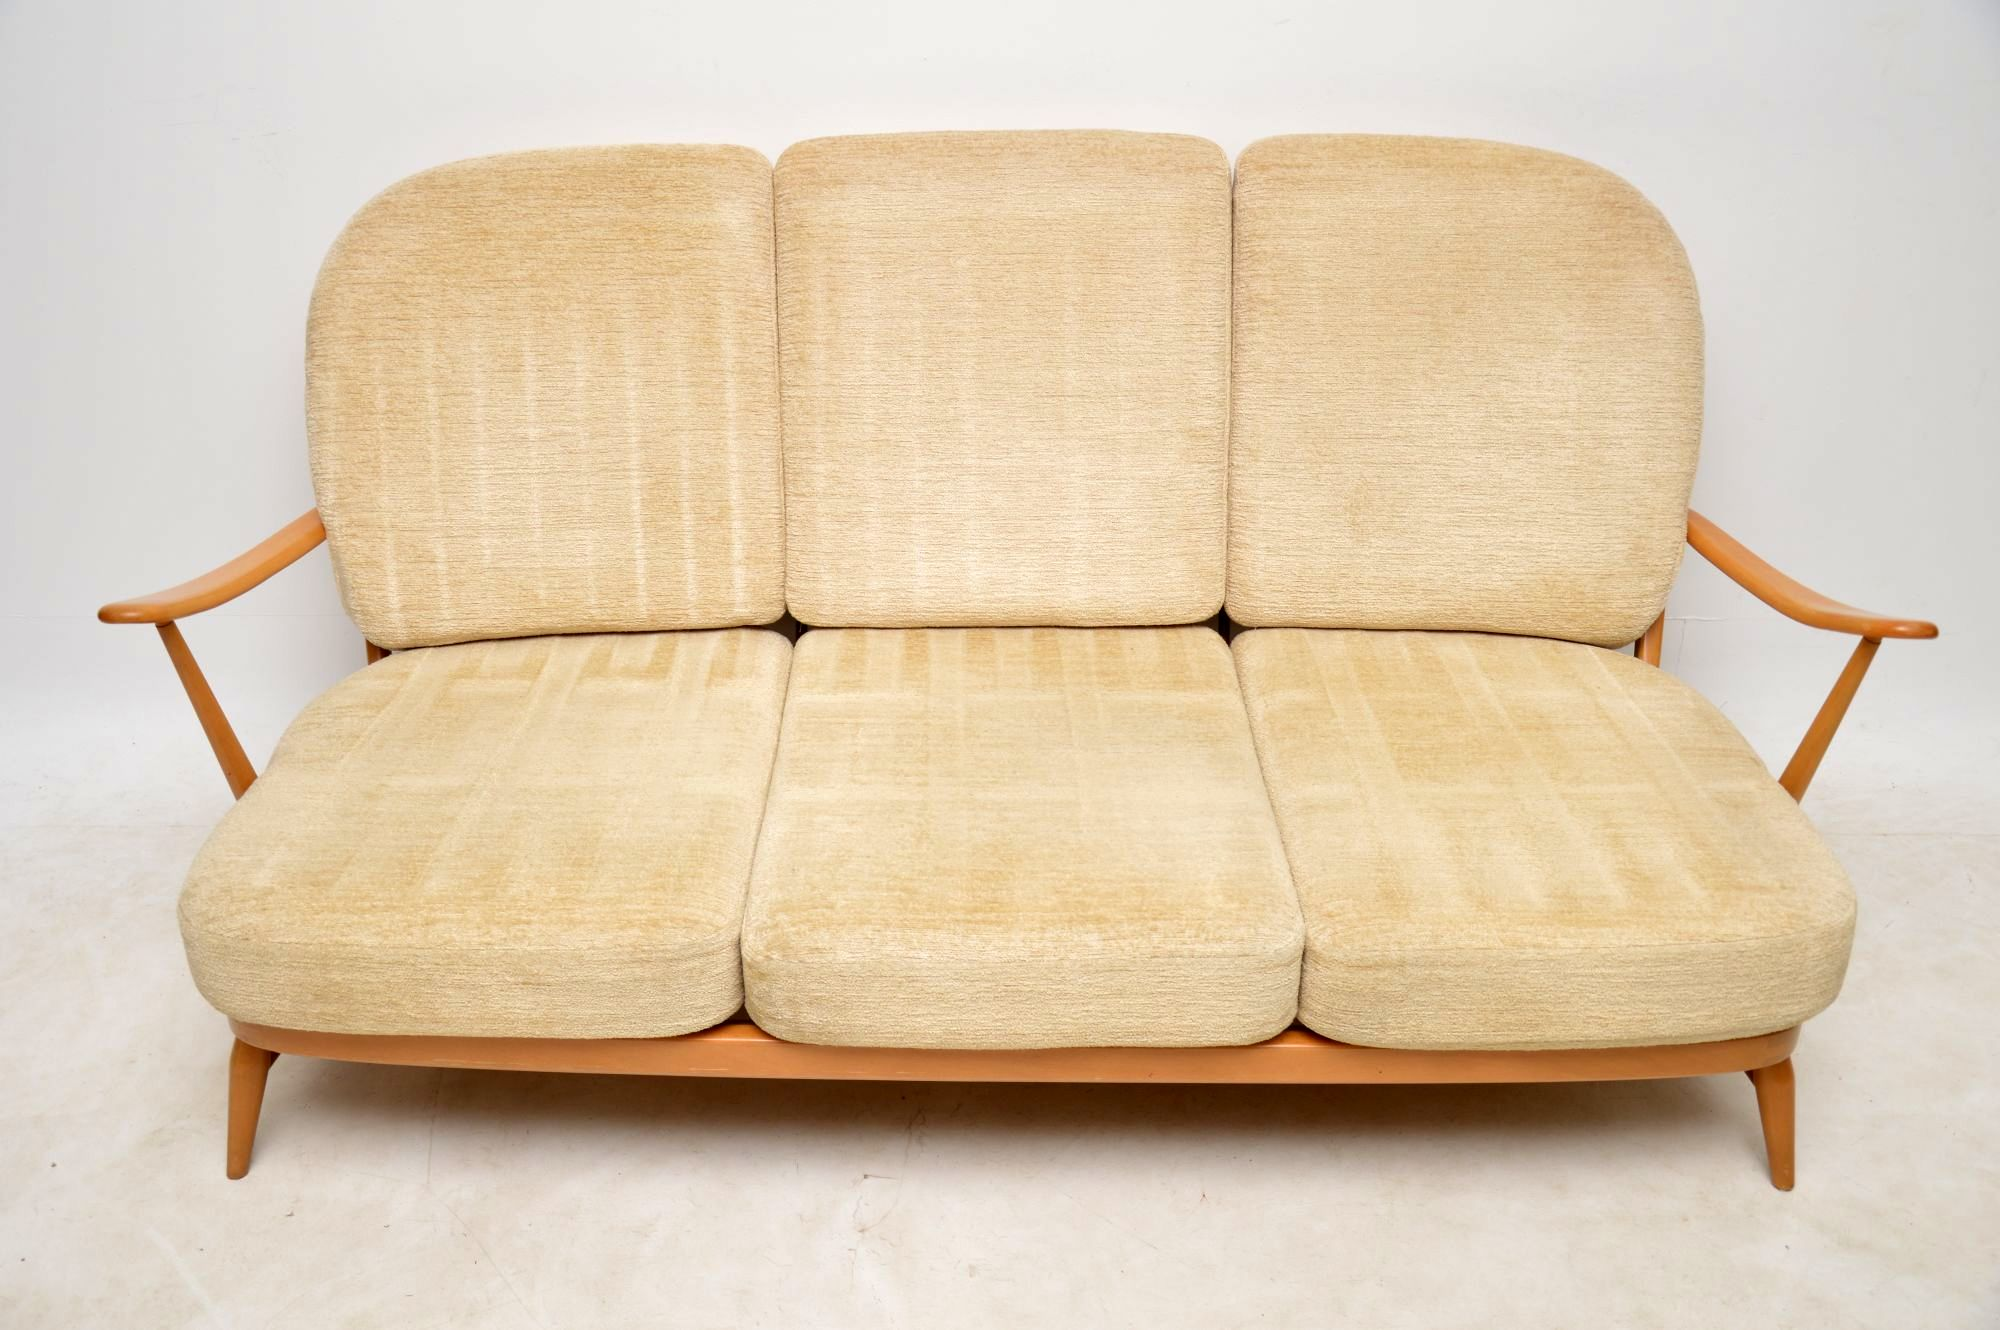 feather filled sofas second hand childrens sofa chair bed 1960s vintage ercol and pair of armchairs